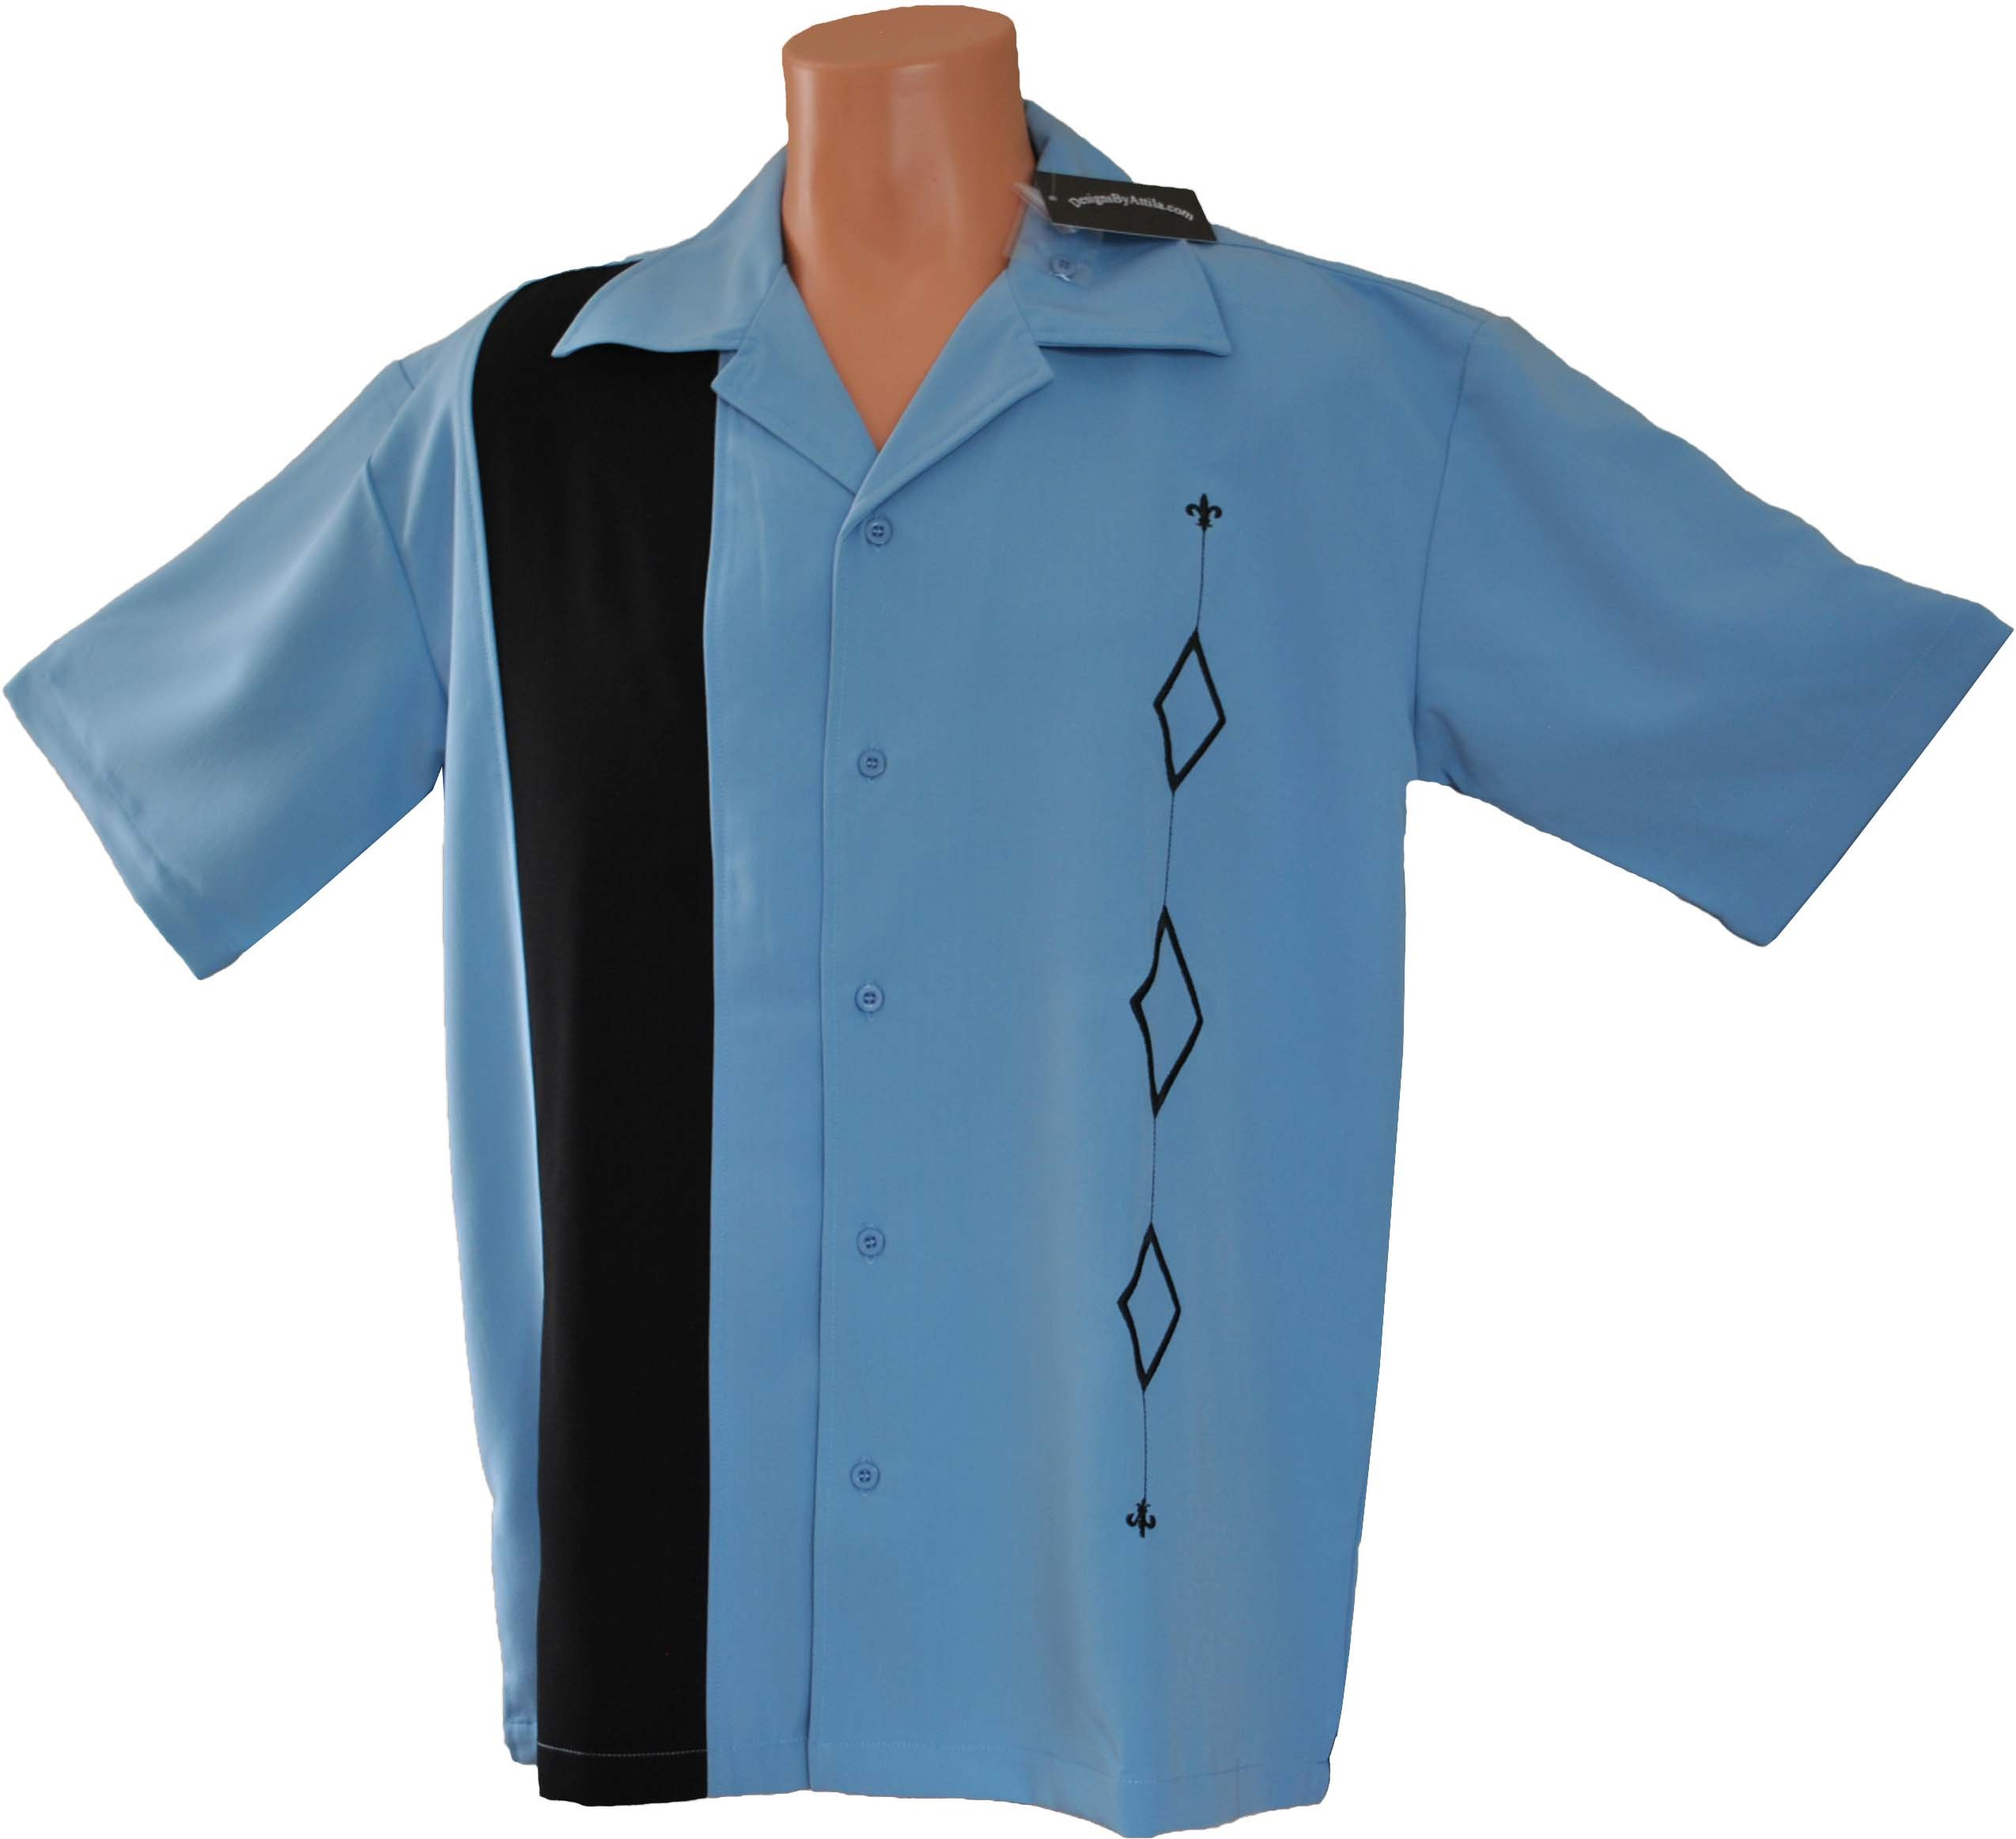 Designs by Attila Mens 2XLT Retro Bowling Shirt, BIG & TALL sizes. ALASKA BLUE by Designs by Attila (Image #2)